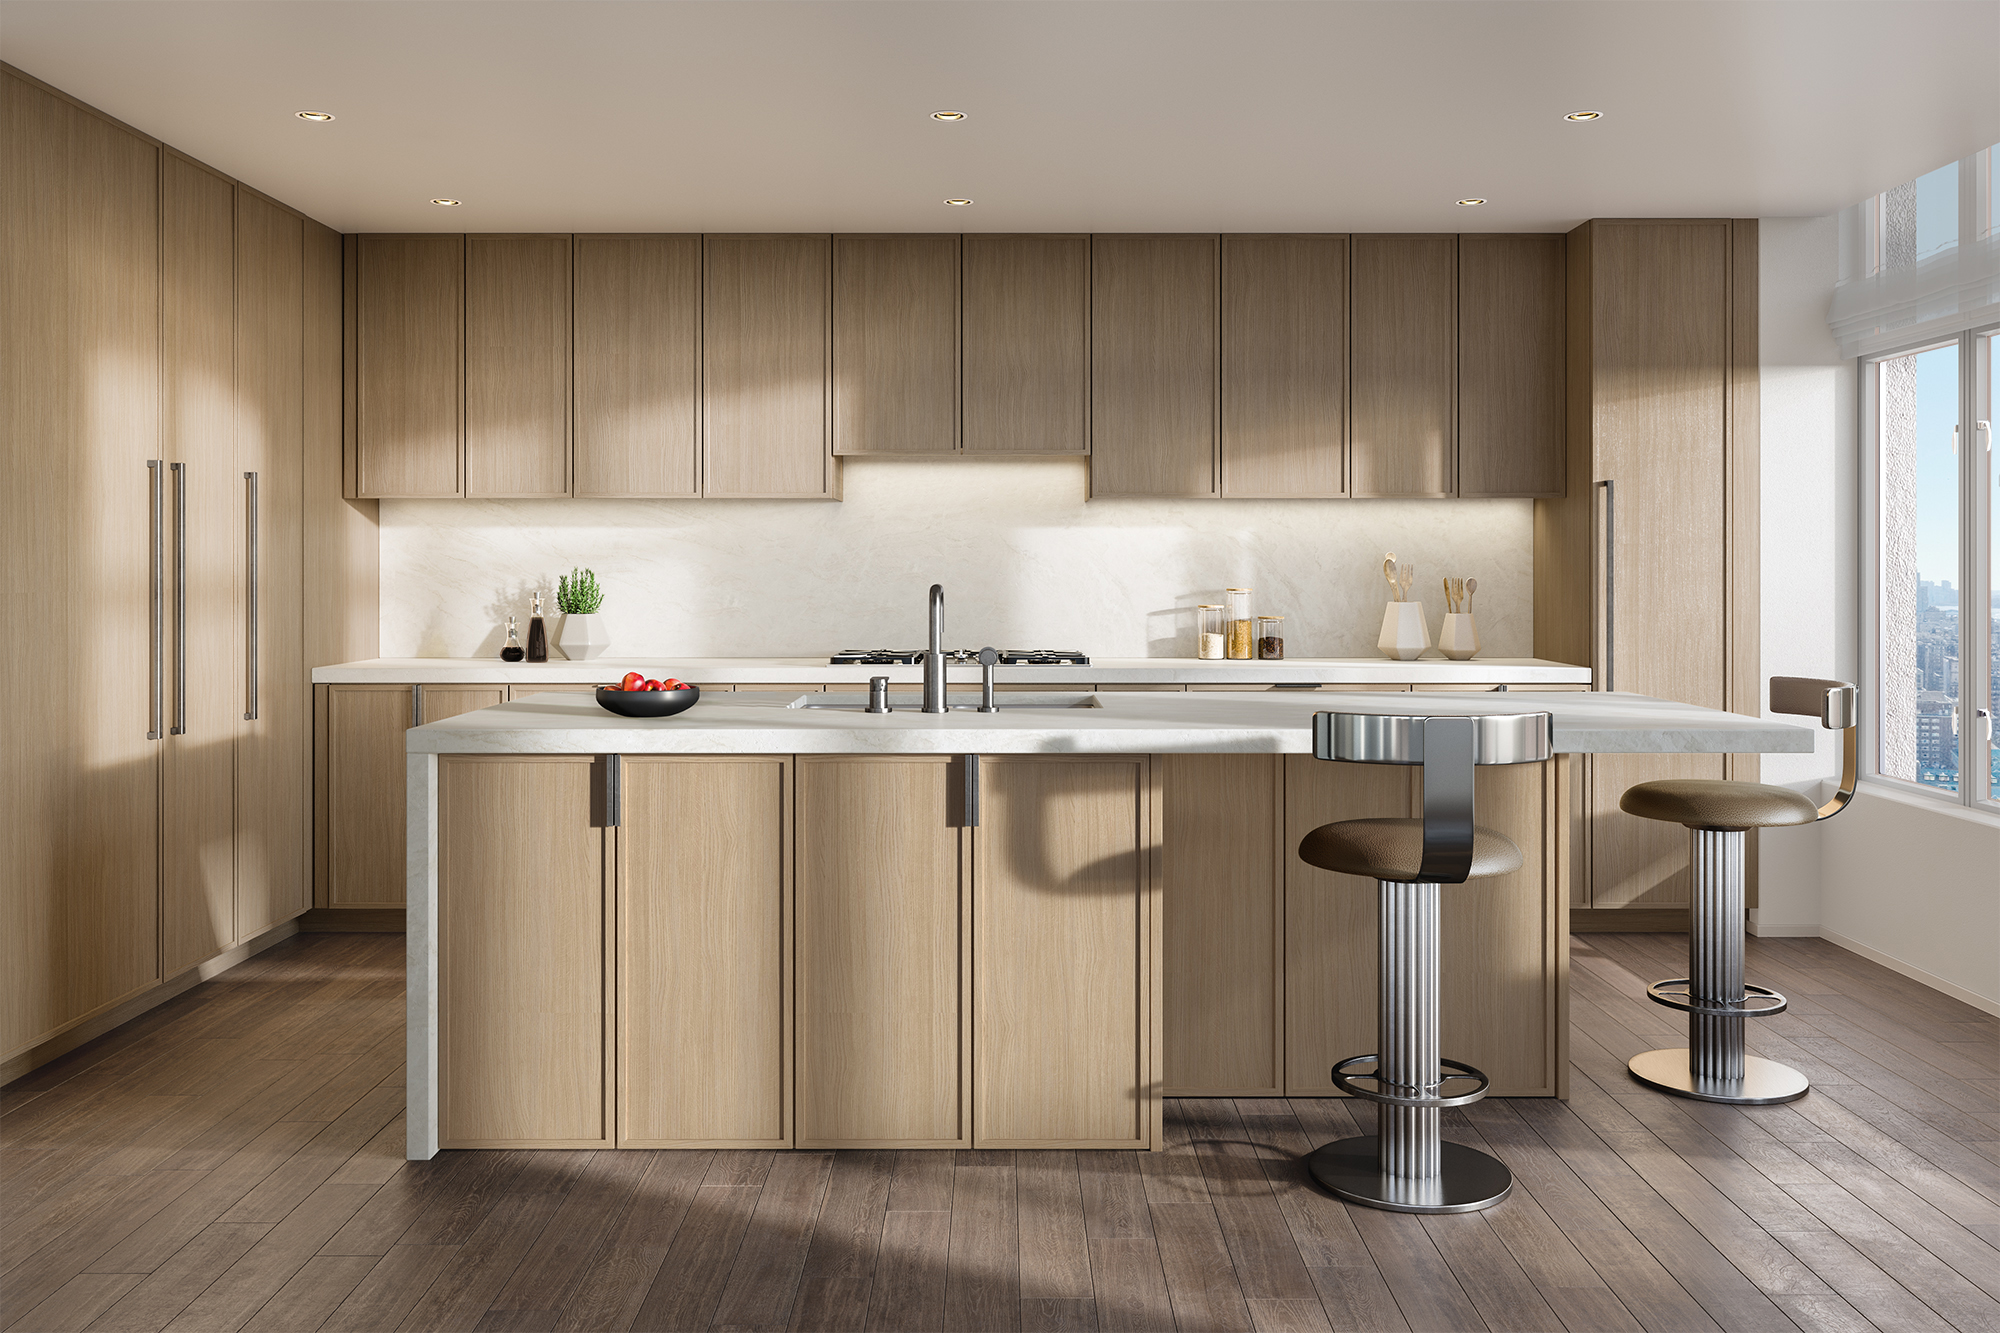 Vandewater Kitchen with Light Finish Rendering